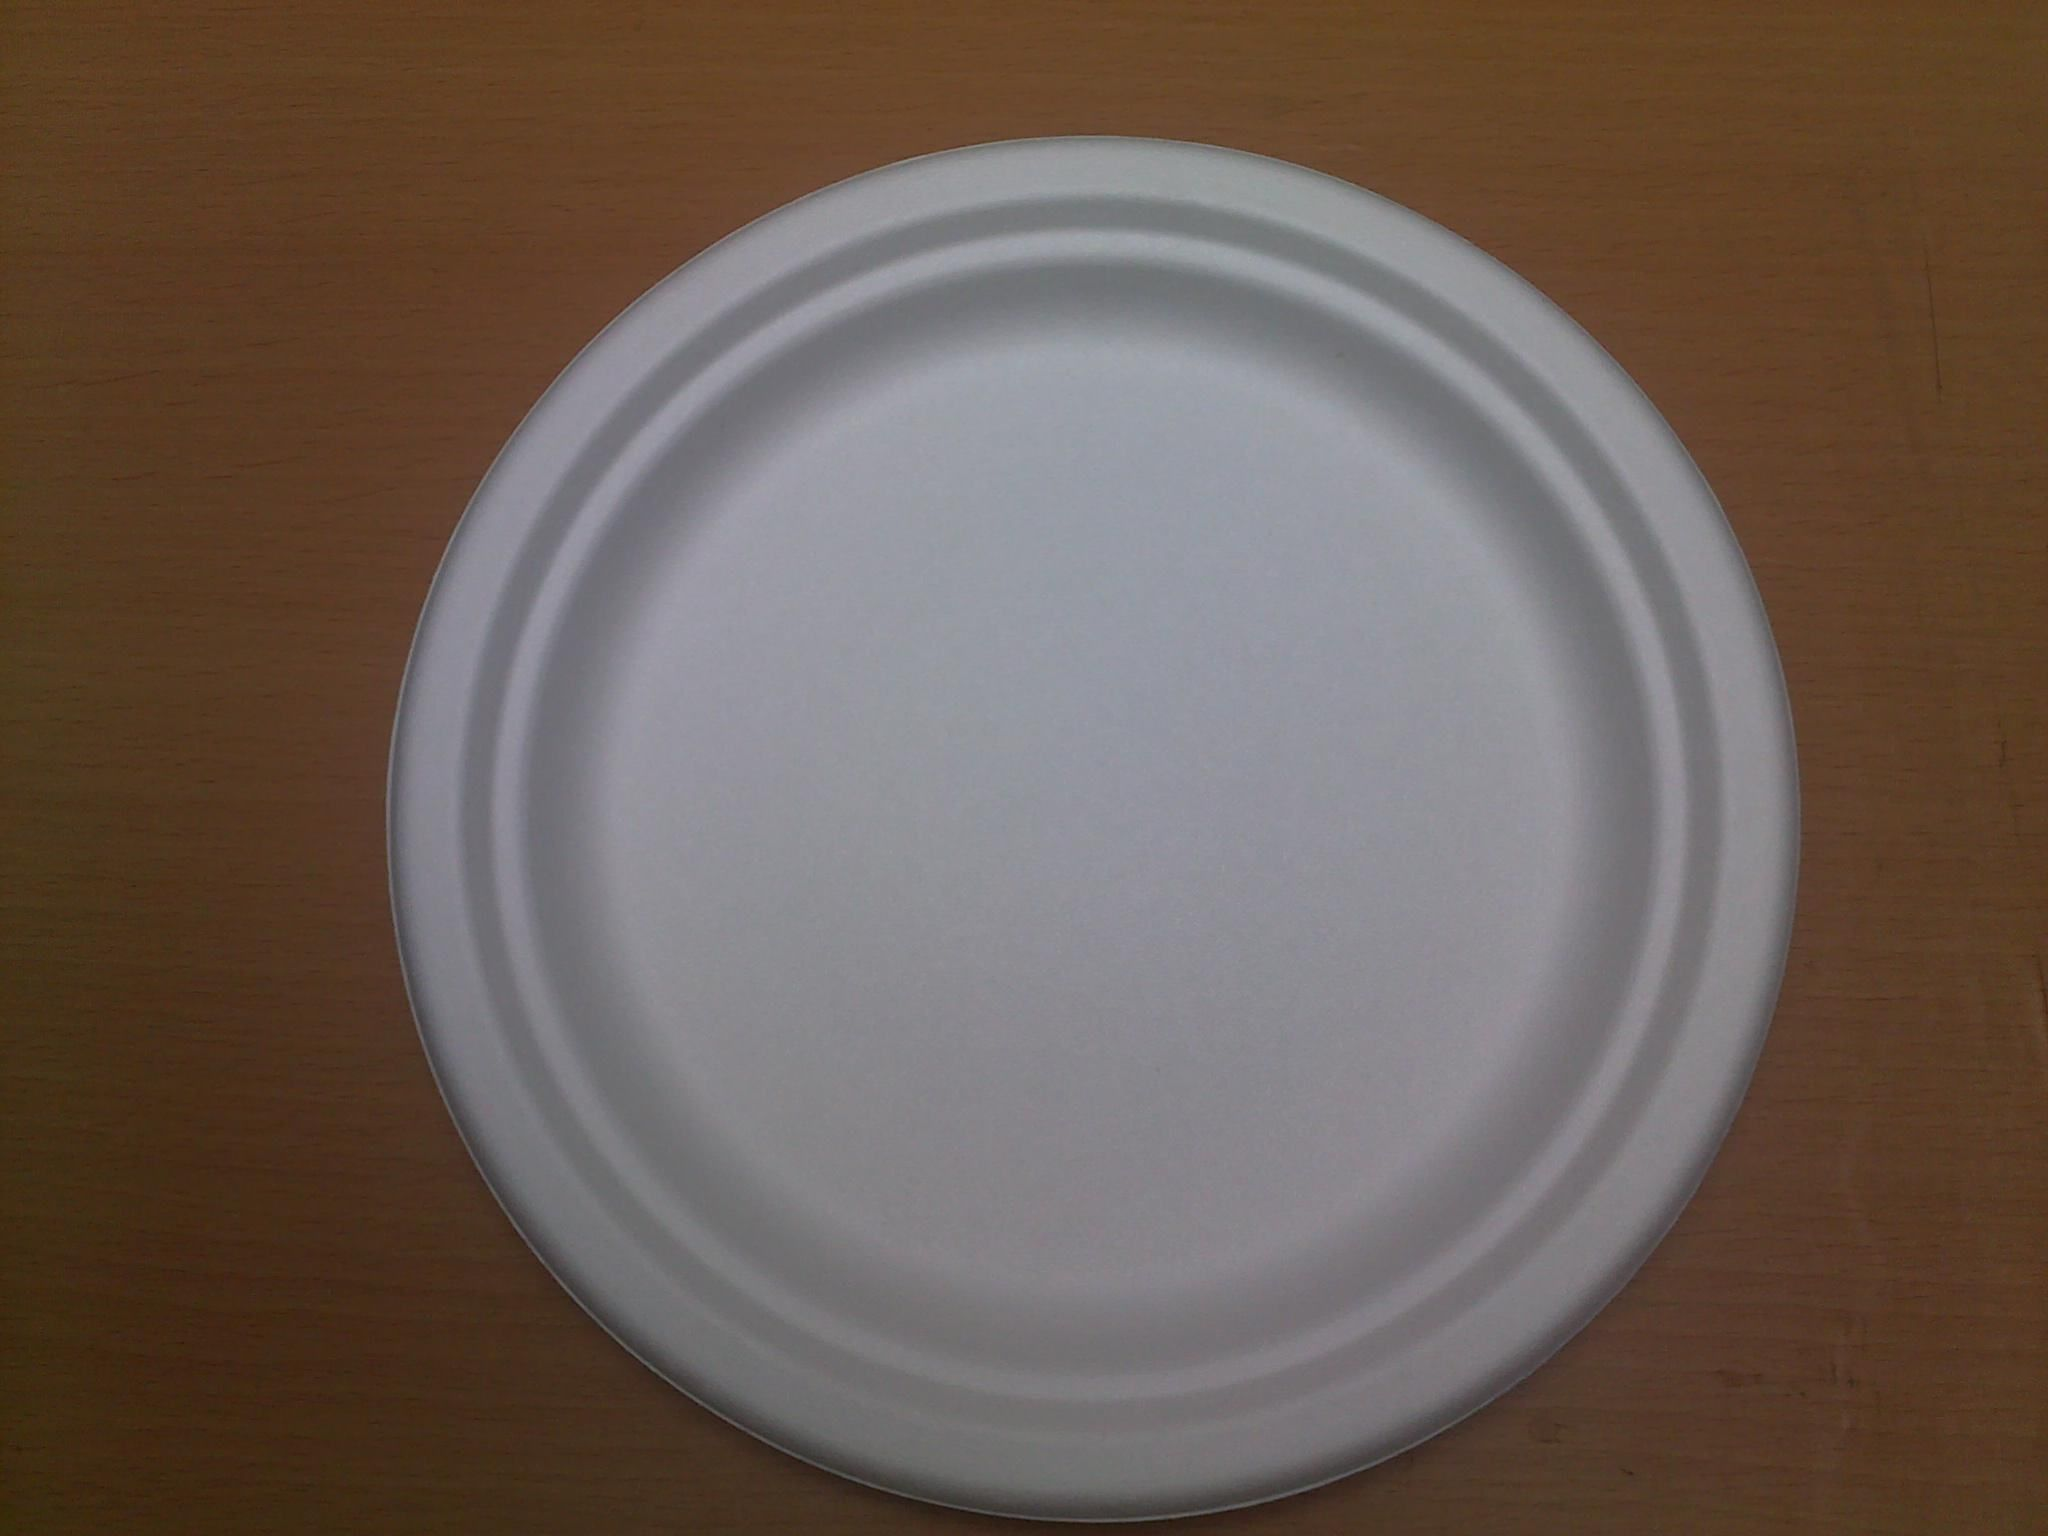 BIODEGRADABLE , CORN STARCH PLATES of DIFFERENT SIZES and